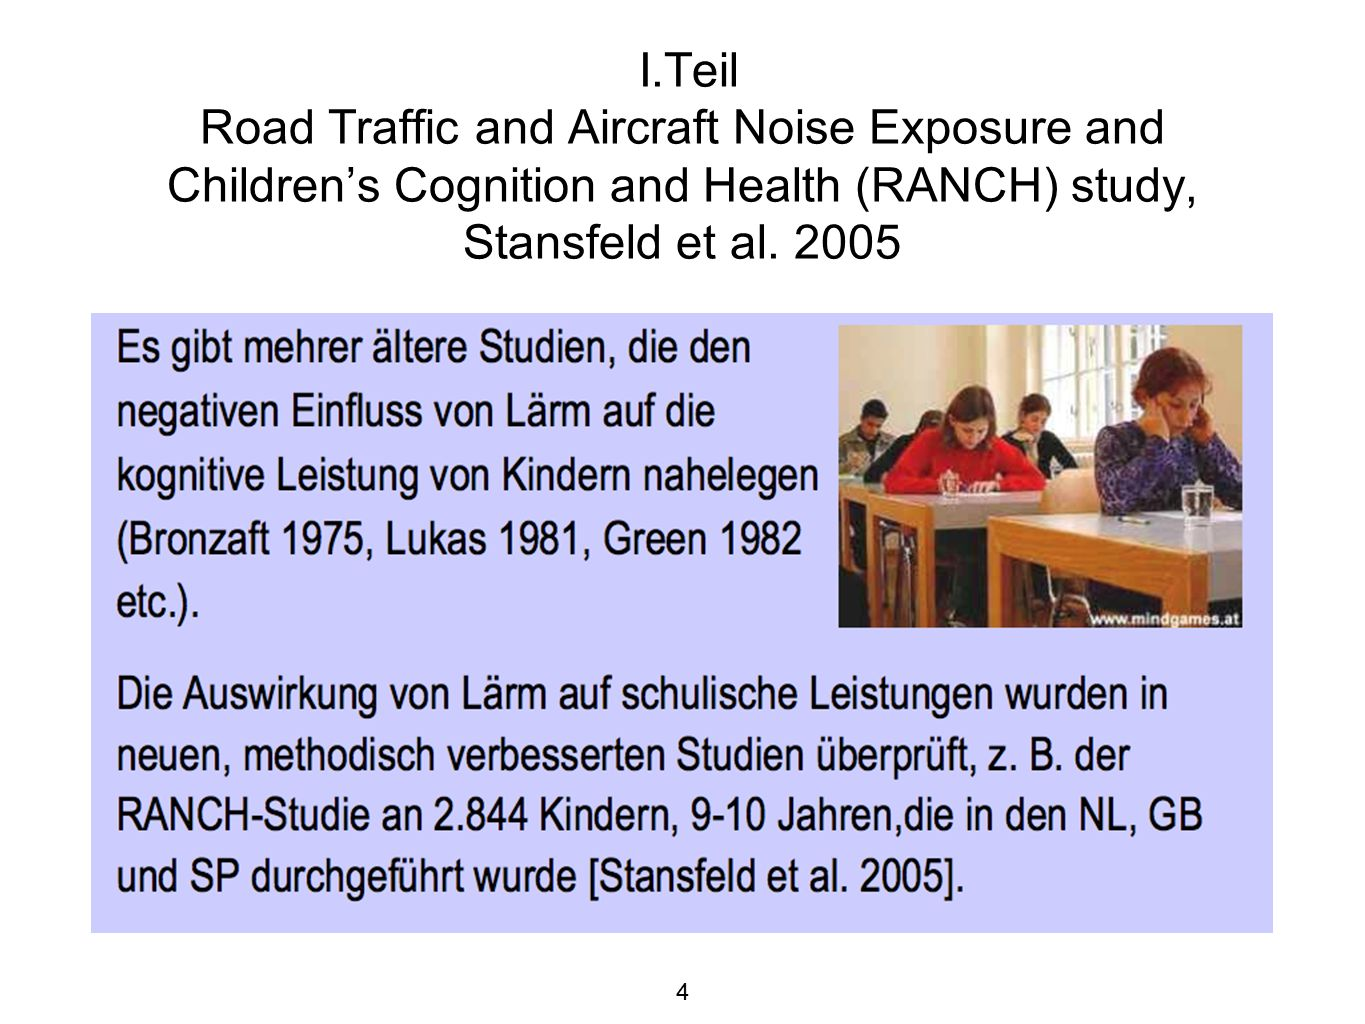 4 I.Teil Road Traffic and Aircraft Noise Exposure and Children's Cognition and Health (RANCH) study, Stansfeld et al. 2005